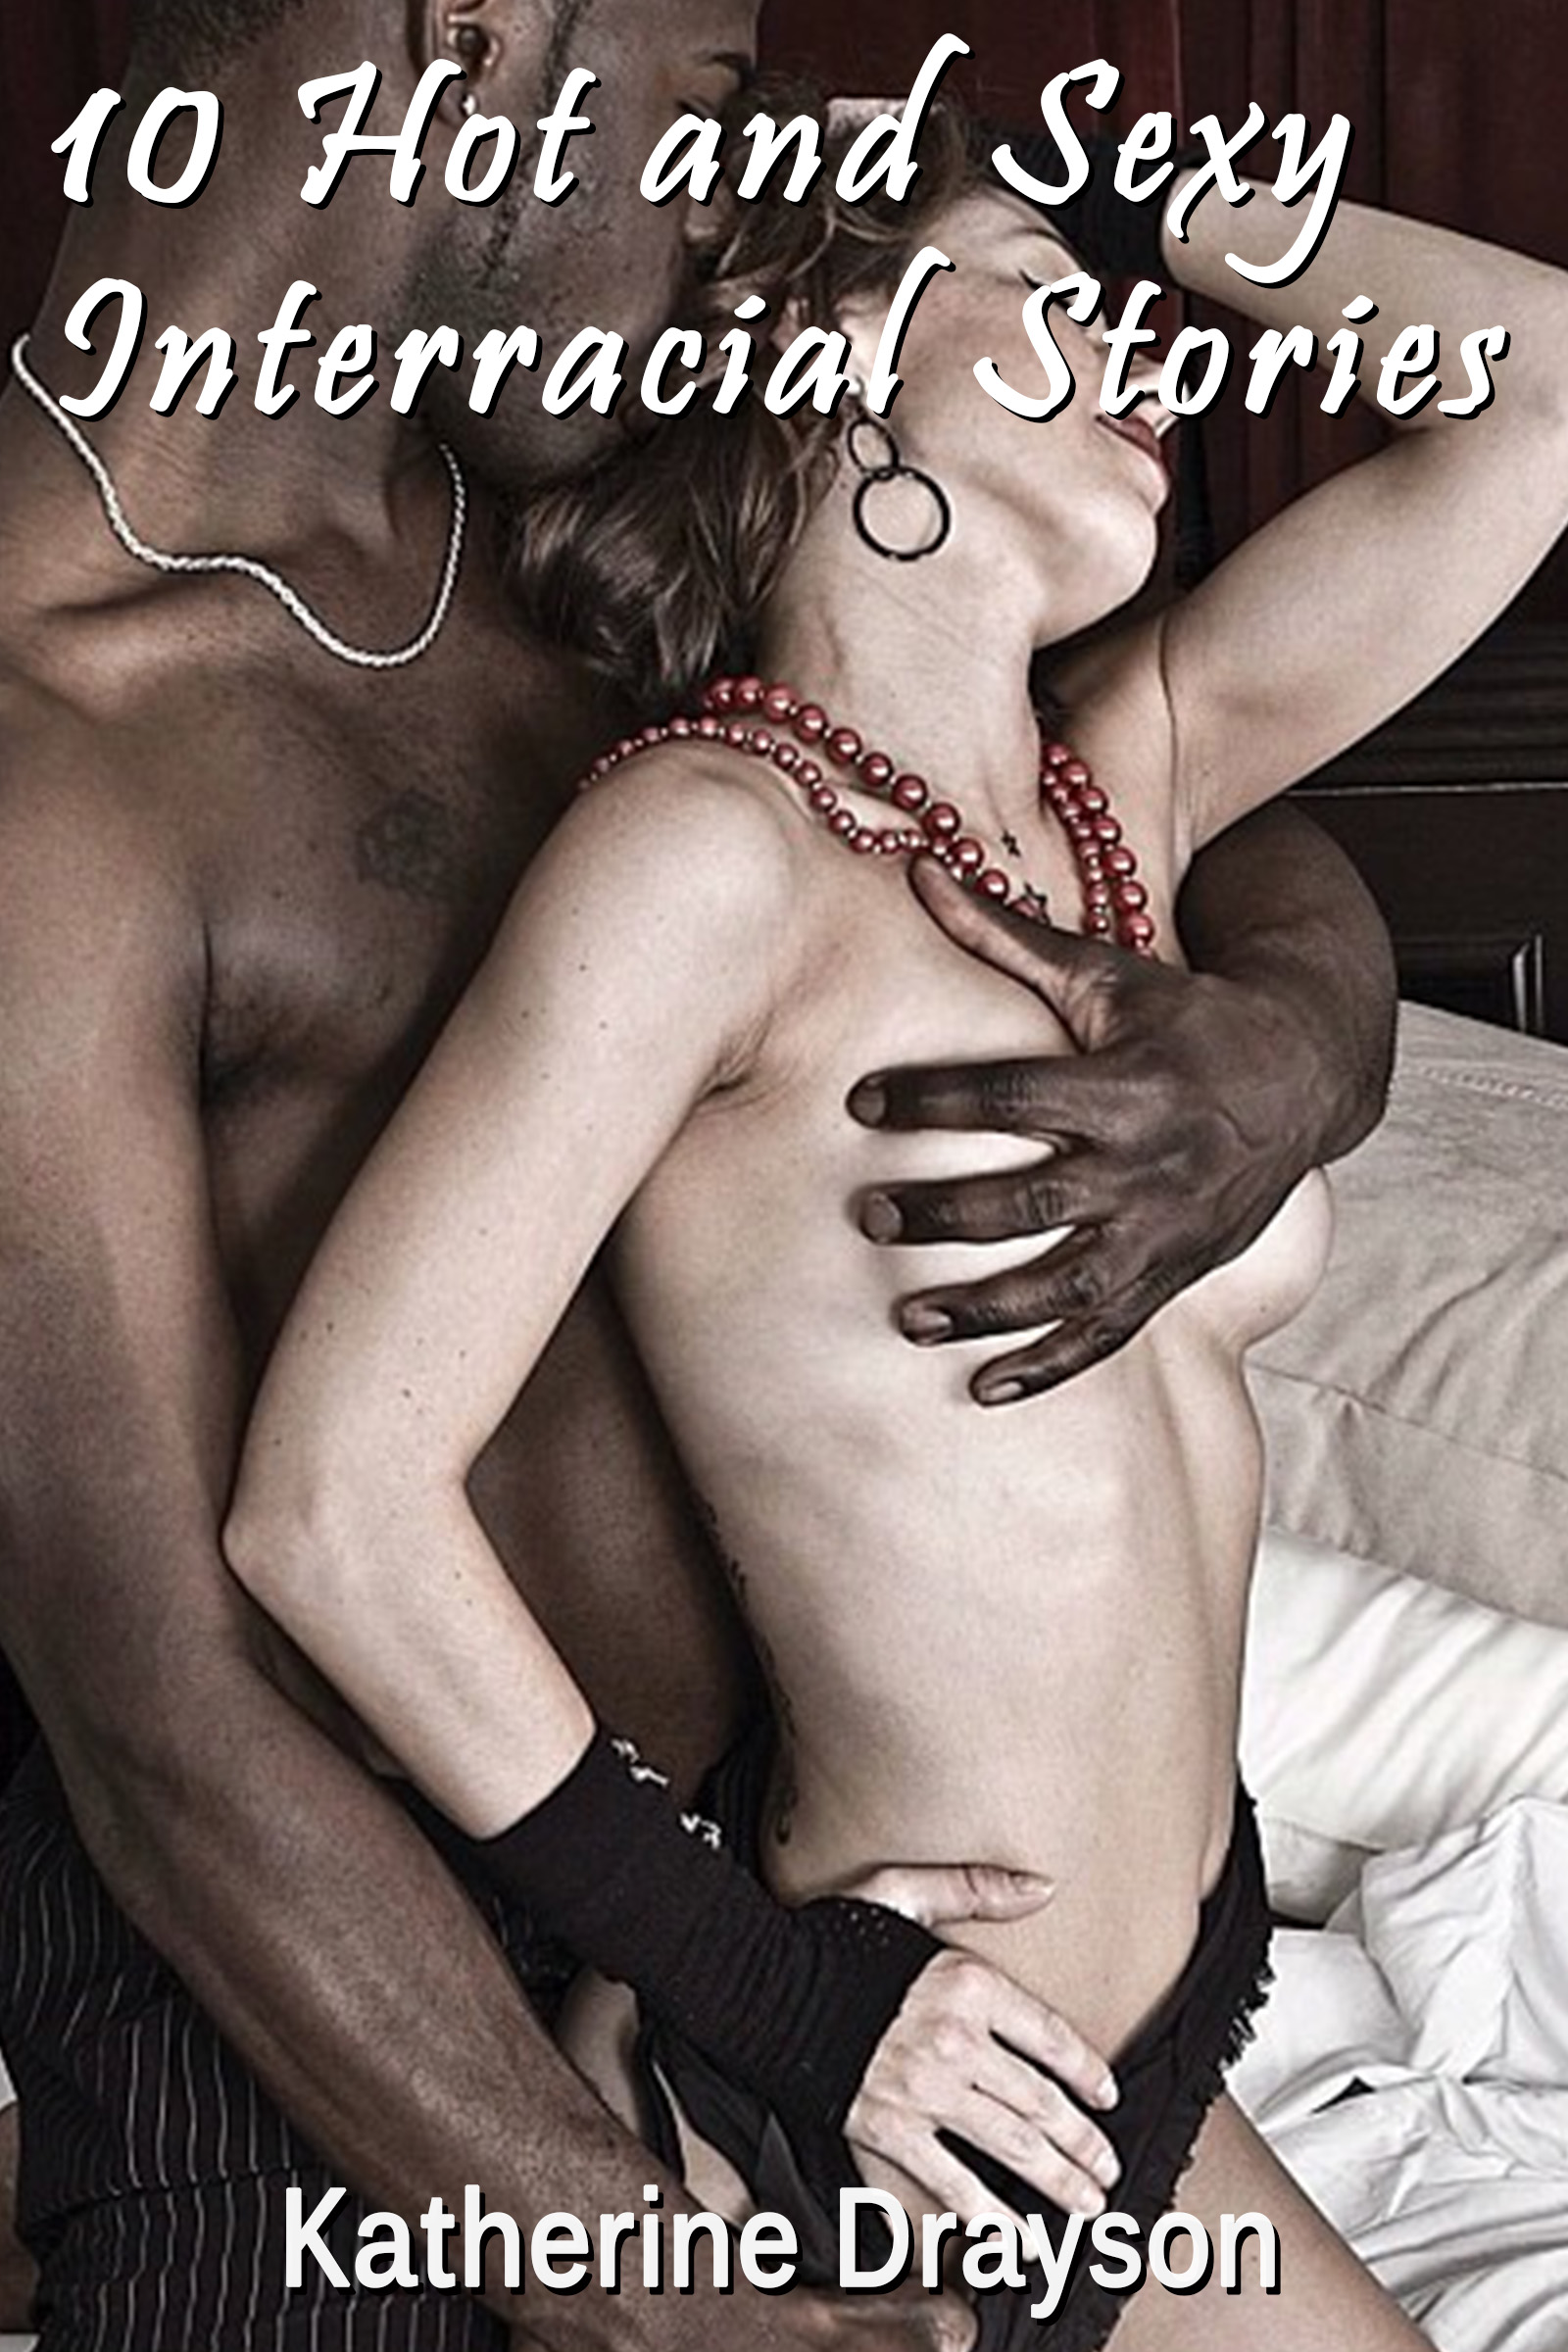 Interracial stories raw